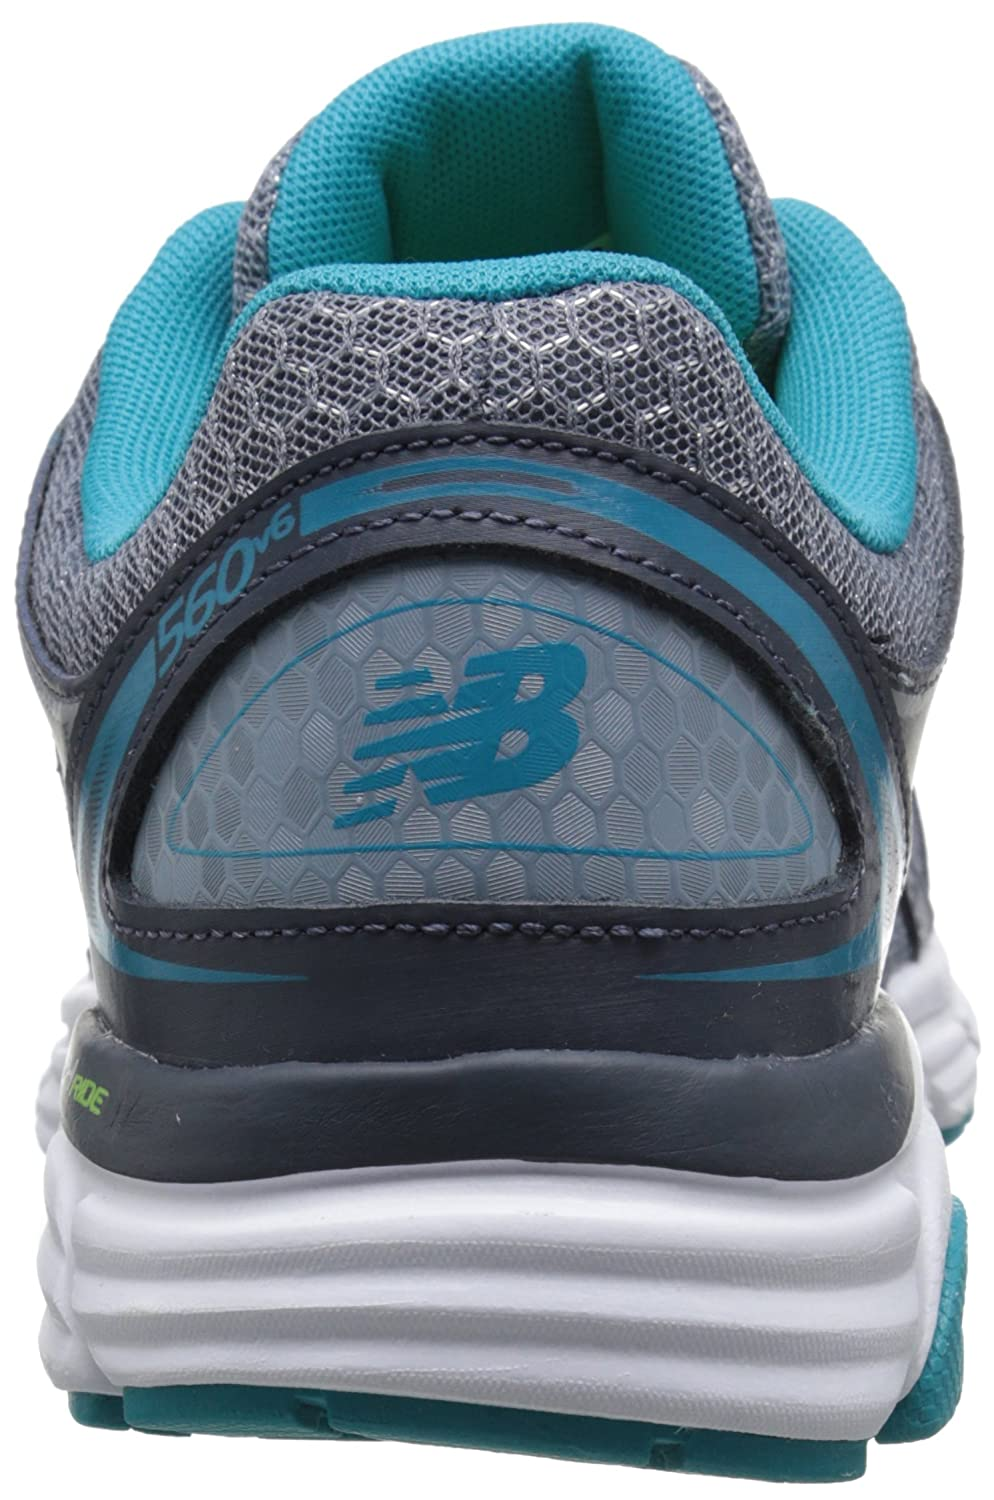 Amazon Menns New Balance Tennissko wAidIEbT2k